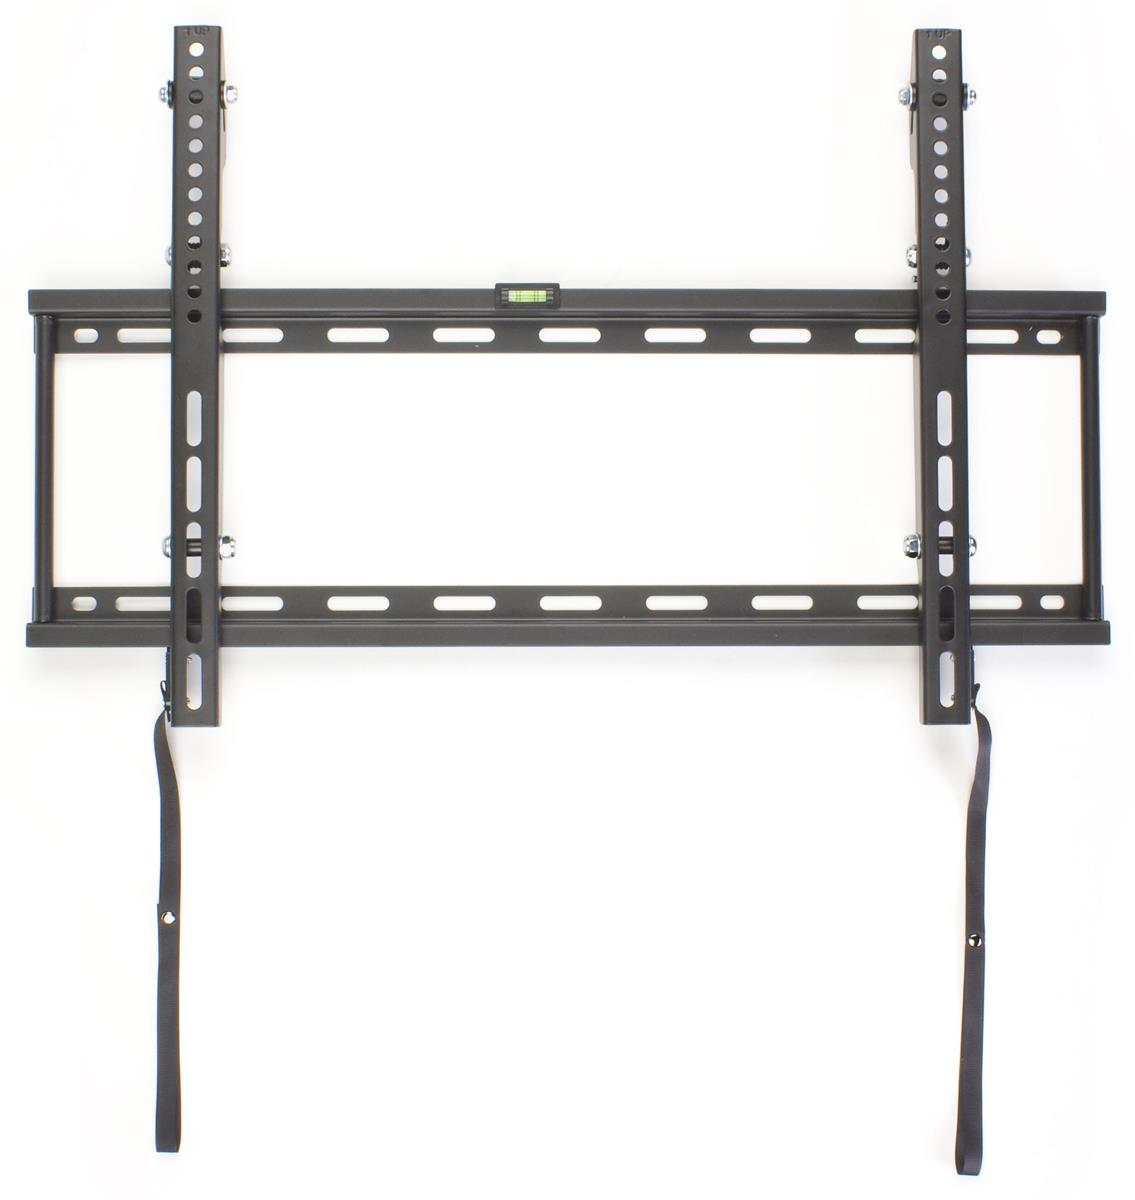 Flat Screen TV Mounts for a 32